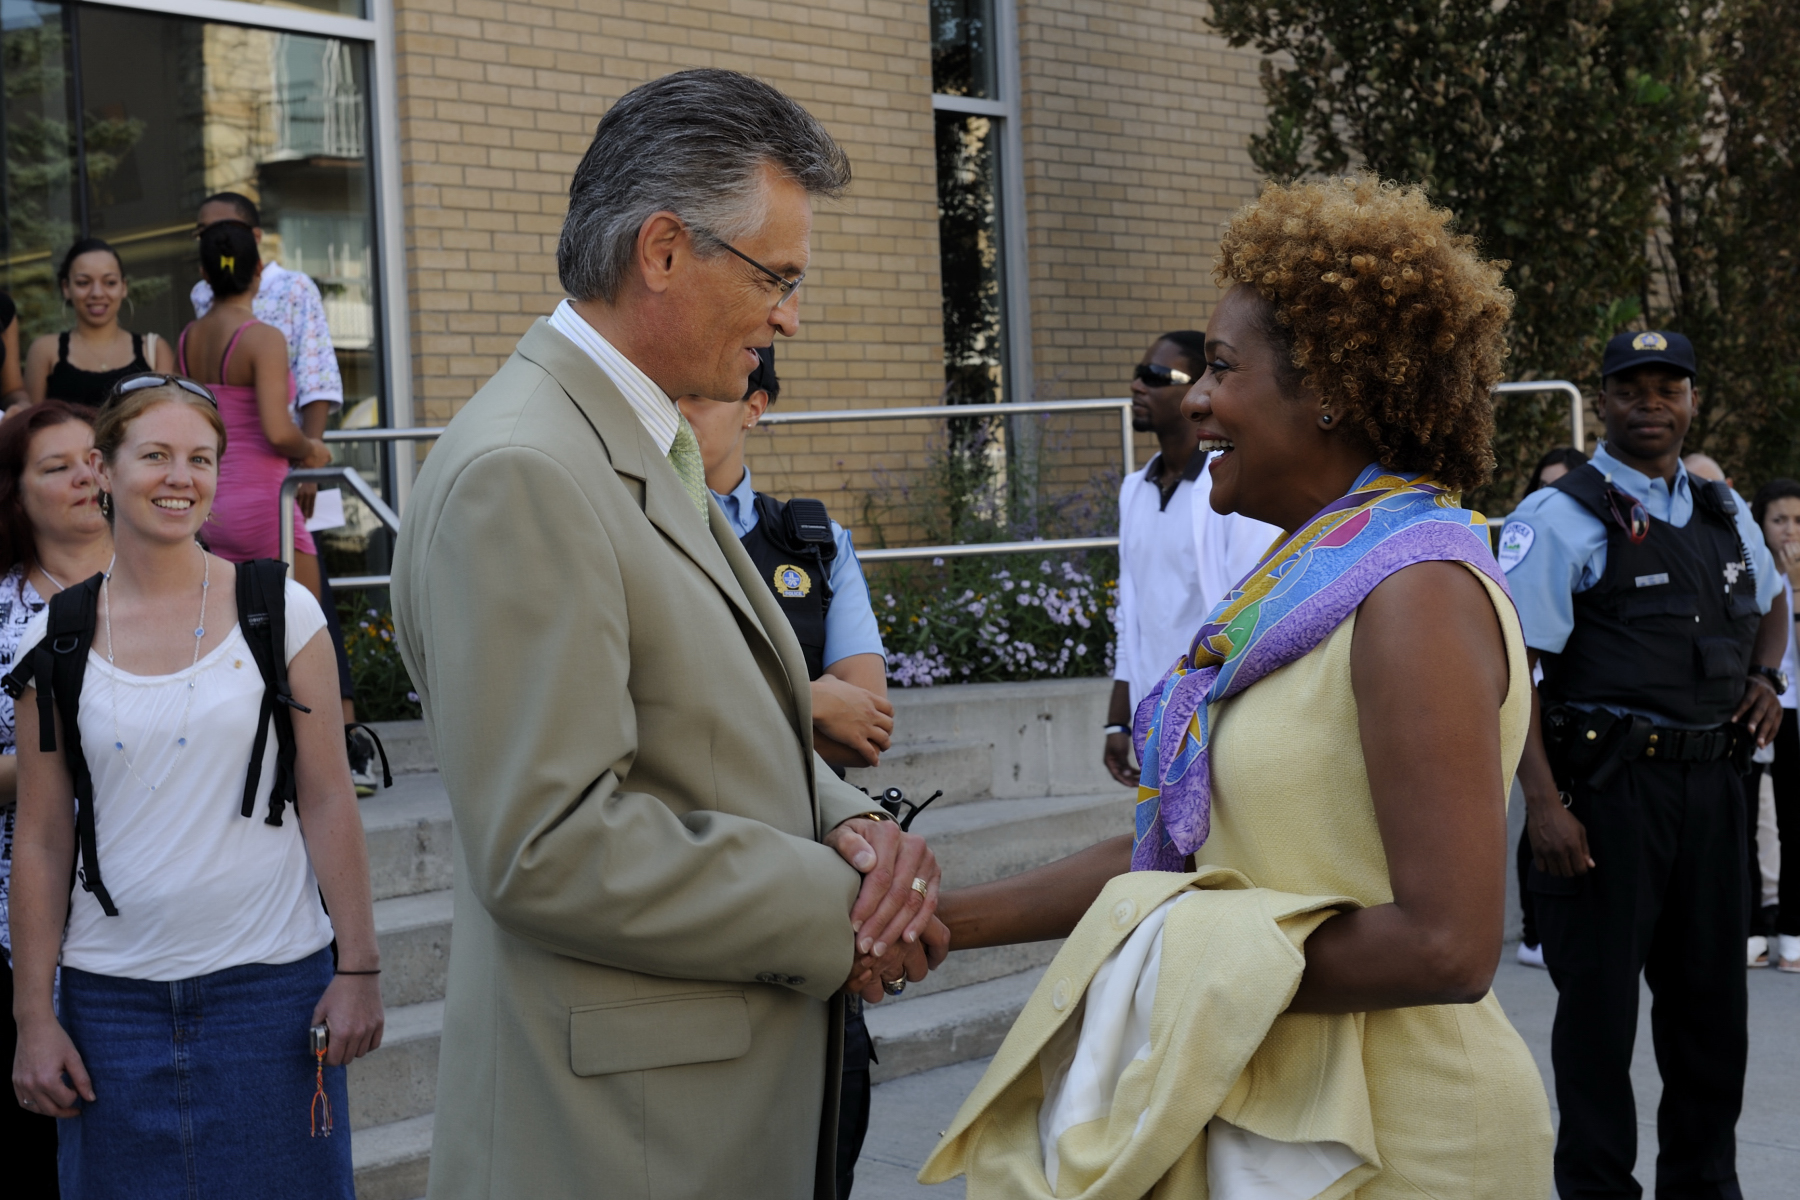 Upon her arrival at the Maison culturelle et communautaire de Montréal-Nord, Her Excellency the Right Honourable Michaëlle Jean, Governor General of Canada, was welcome by the mayor of the arrondissement de Montréal-Nord Mr. Gilles Deguire.